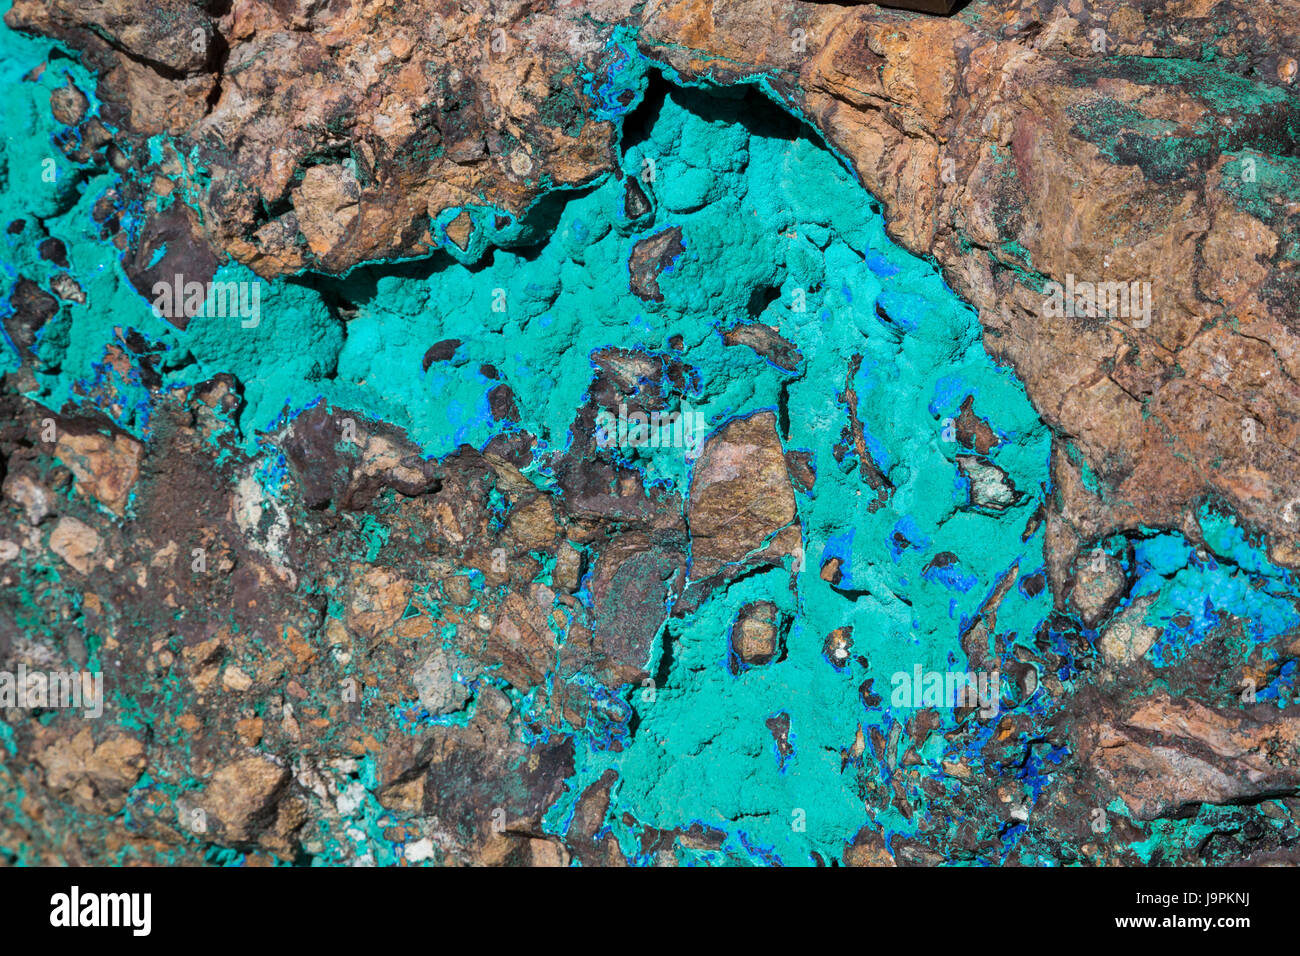 Oracle, Arizona - A rock displaying malachite (green) and azurite (blue) minerals on display outside Biosphere 2. - Stock Image